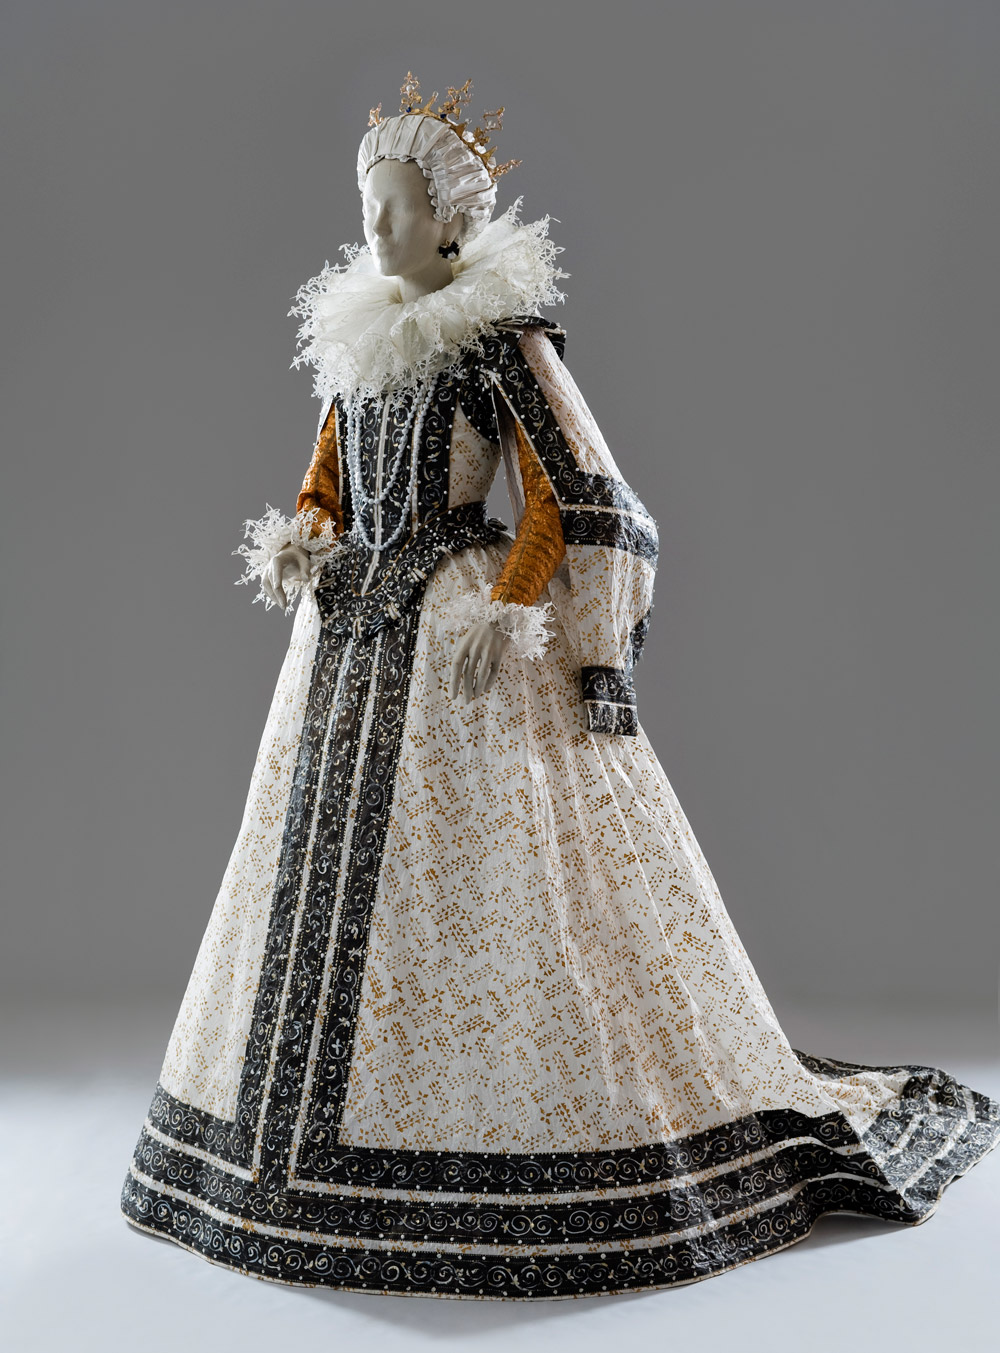 SCAD FASH: Fashioning Art from Paper